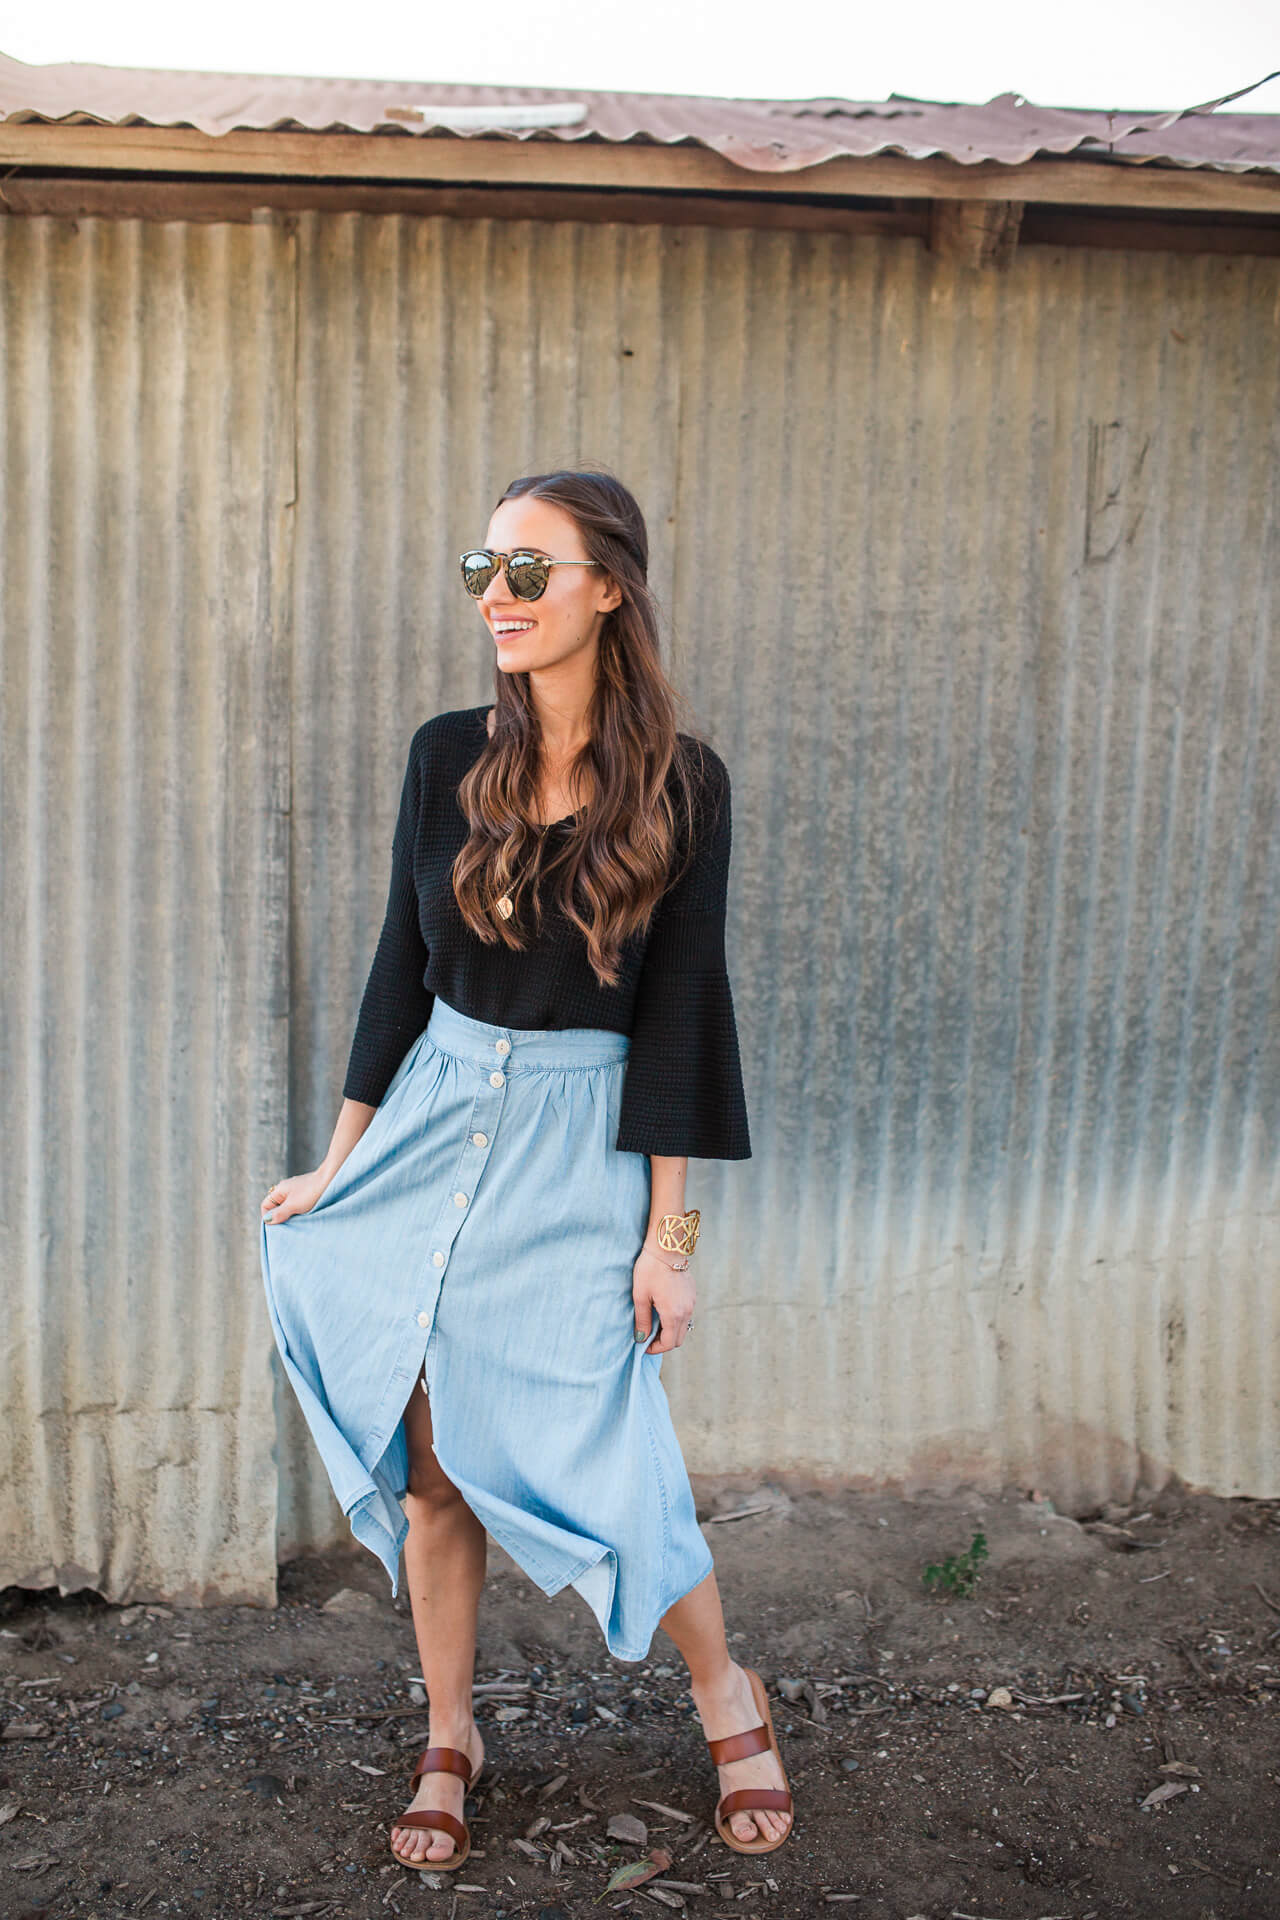 feminine fashion blogger outfit inspiration - M Loves M @marmar